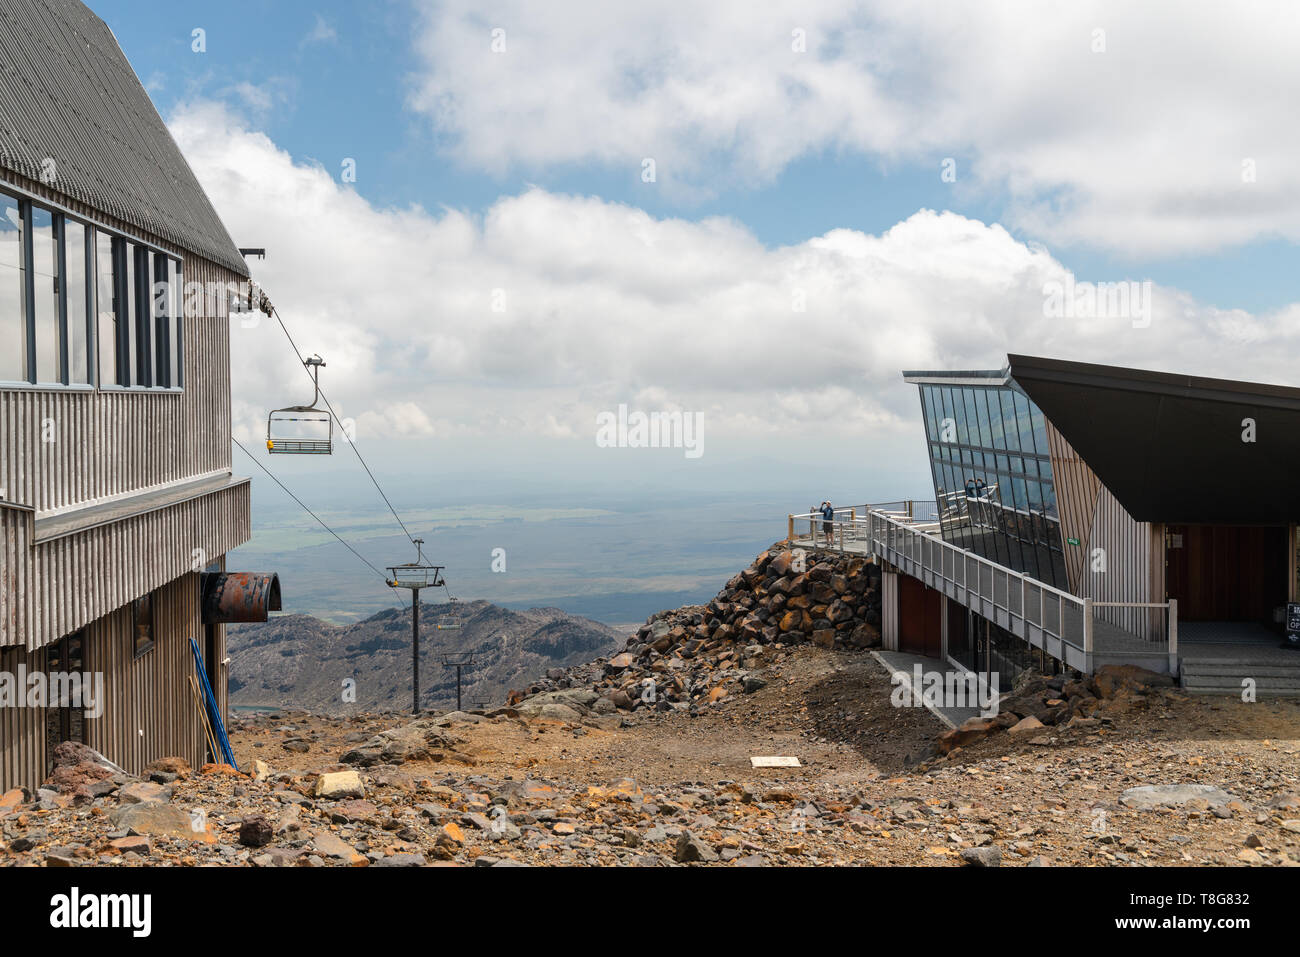 Scenic View of Mount Ruapehu Volcano, New Zealand. Knoll Ridge Cafe and Ski Lift - Stock Image